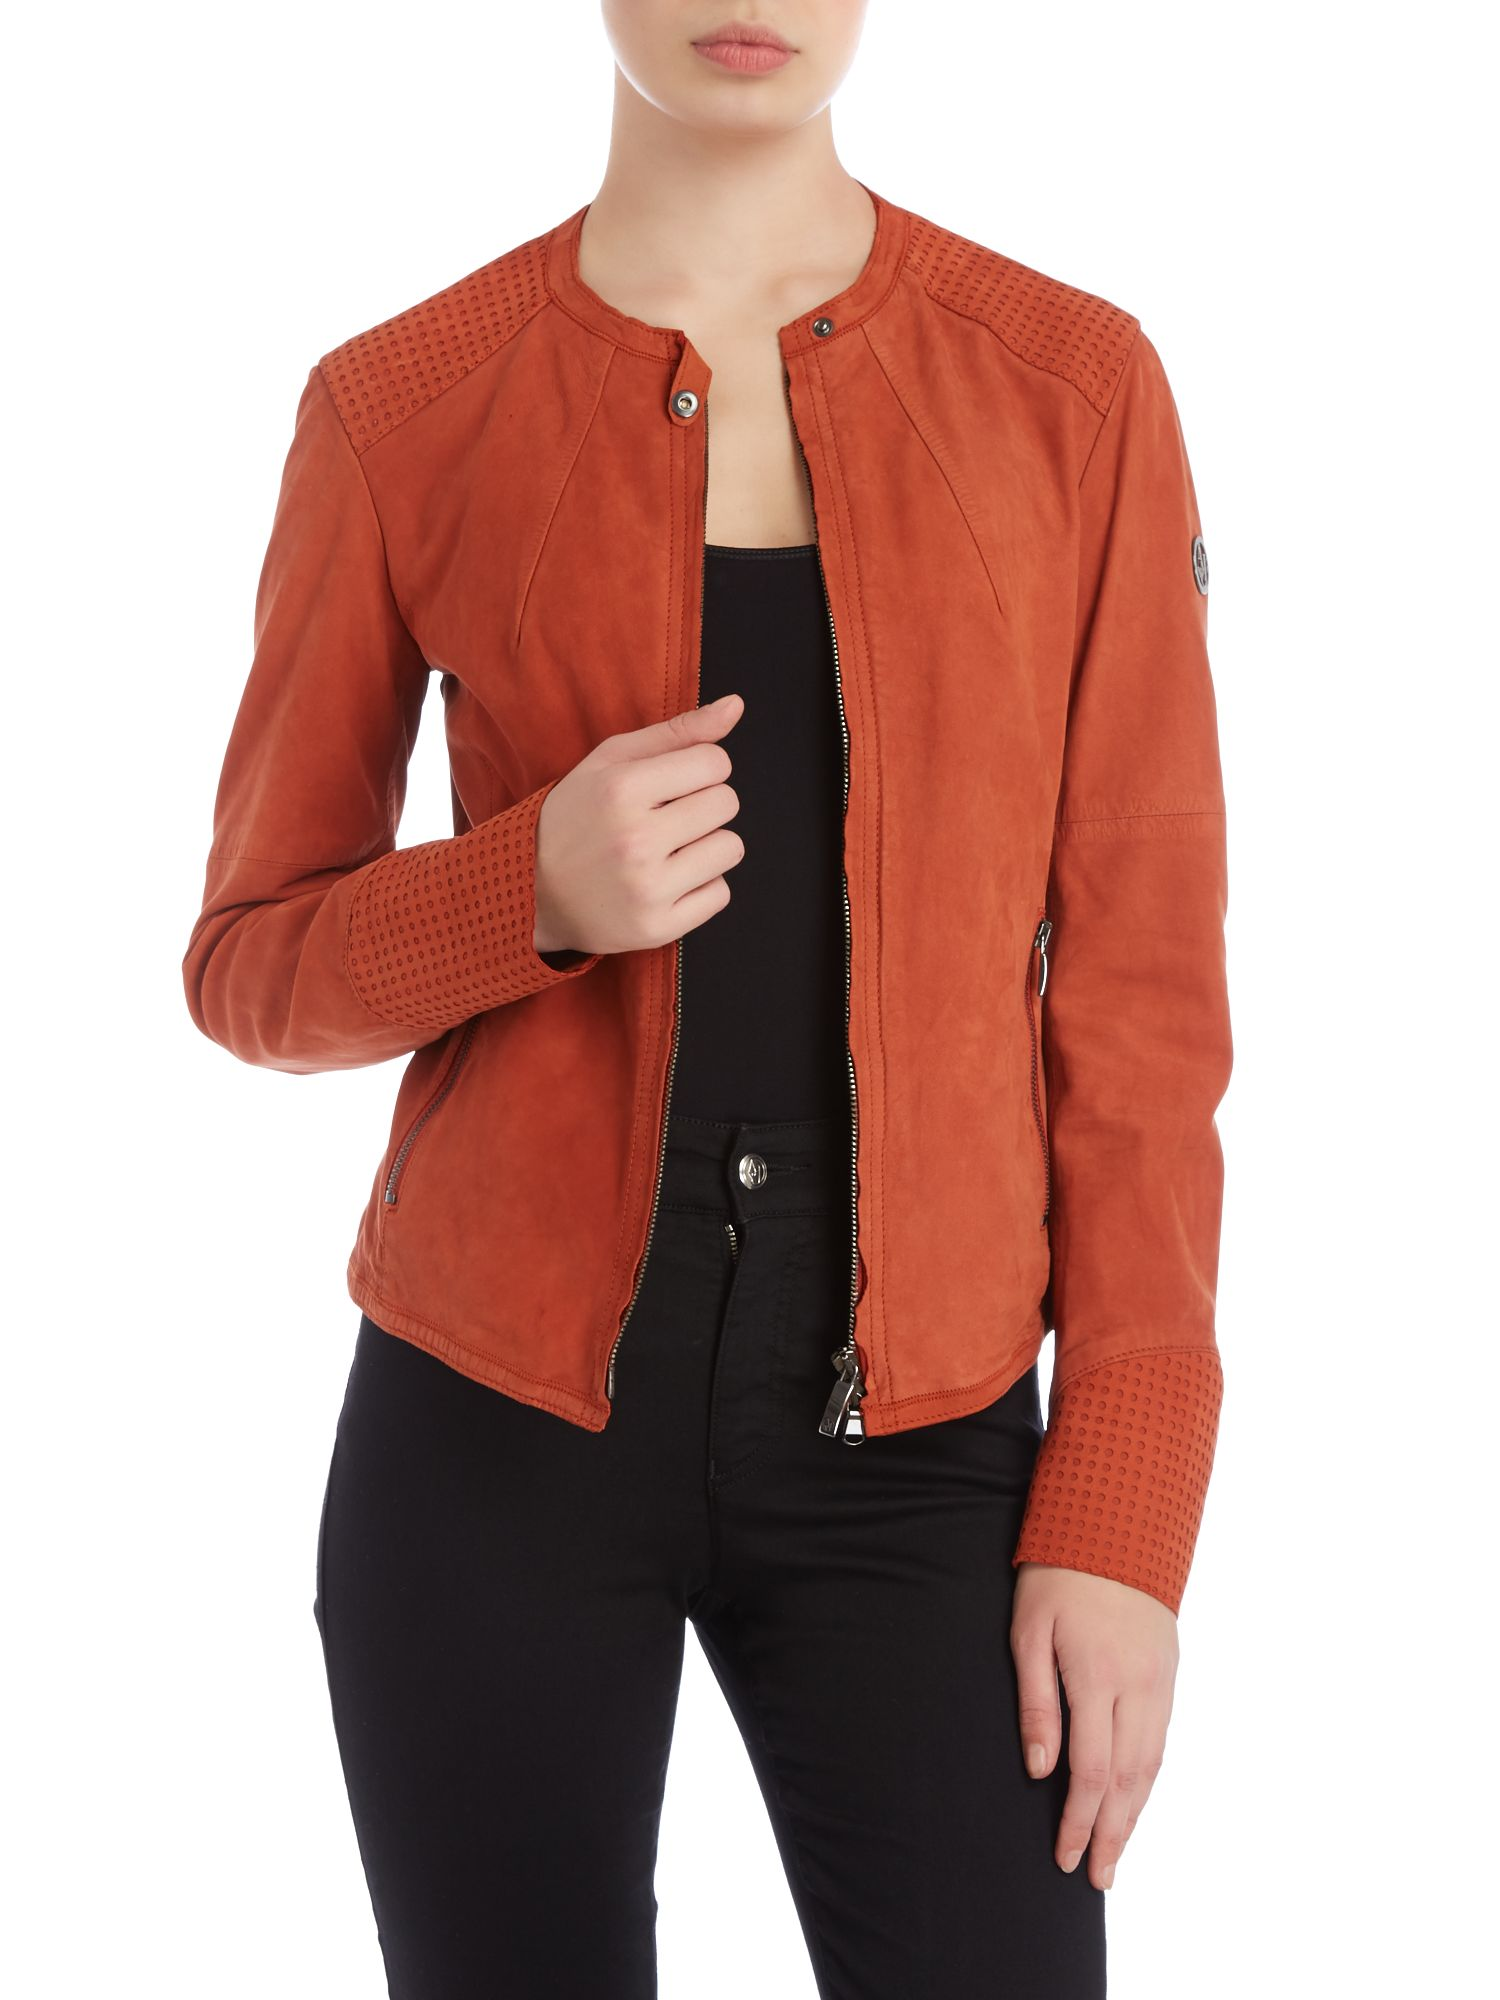 Leather jacket with cut out detail